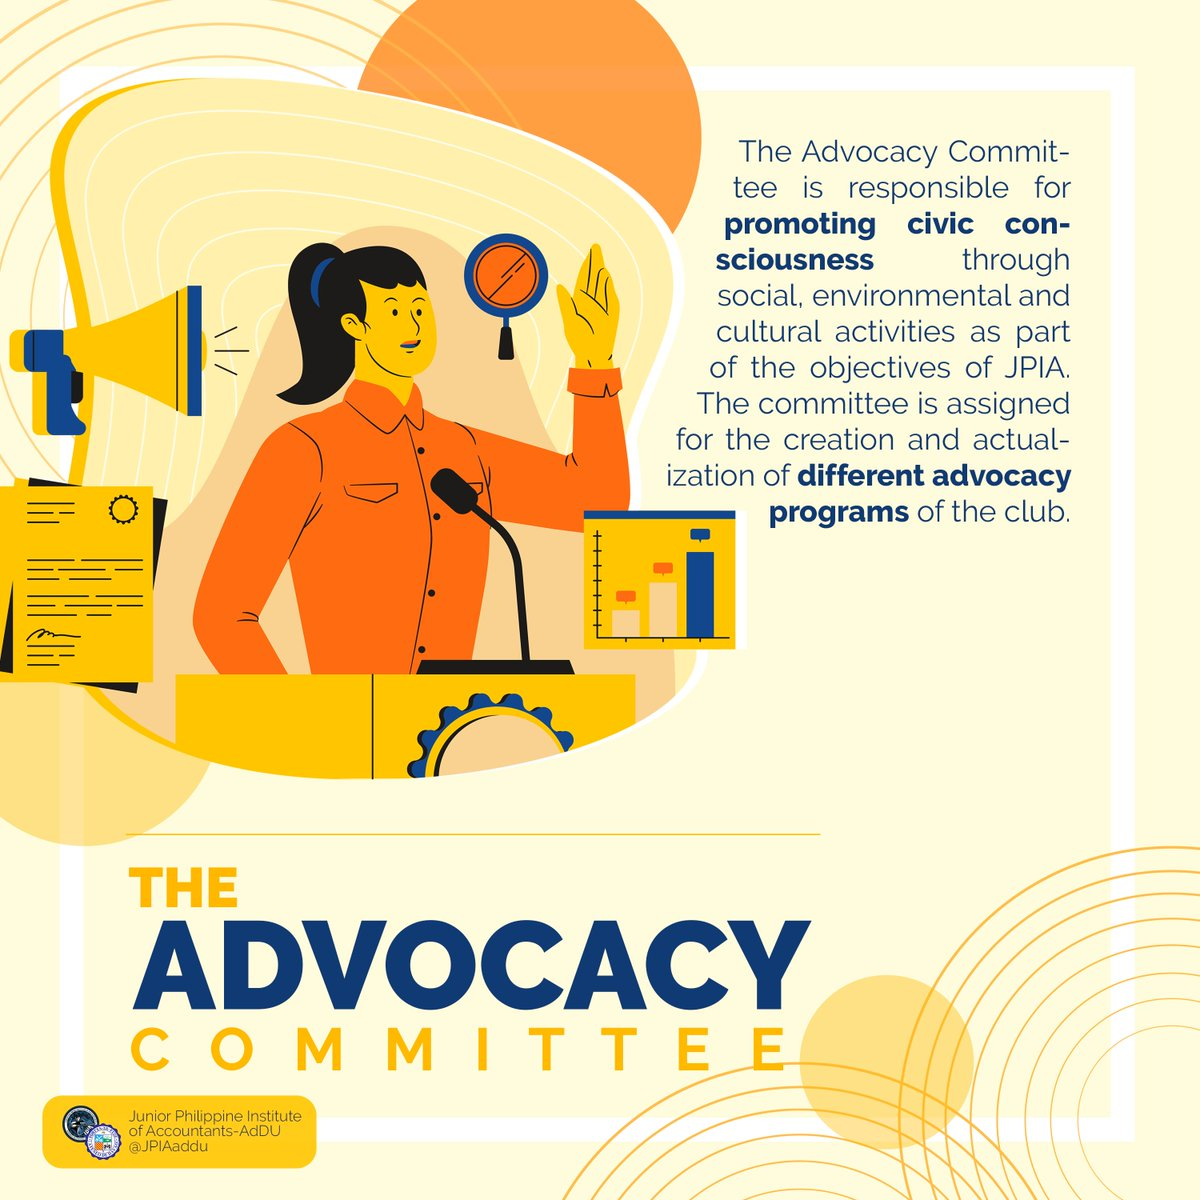 Advocacy Want to become the voice of the unheard?  Join Advocacy Committee and continue inspiring people!    Contact us via Twitter or Facebook for more info and details. pic.twitter.com/cFRRVmnlXV